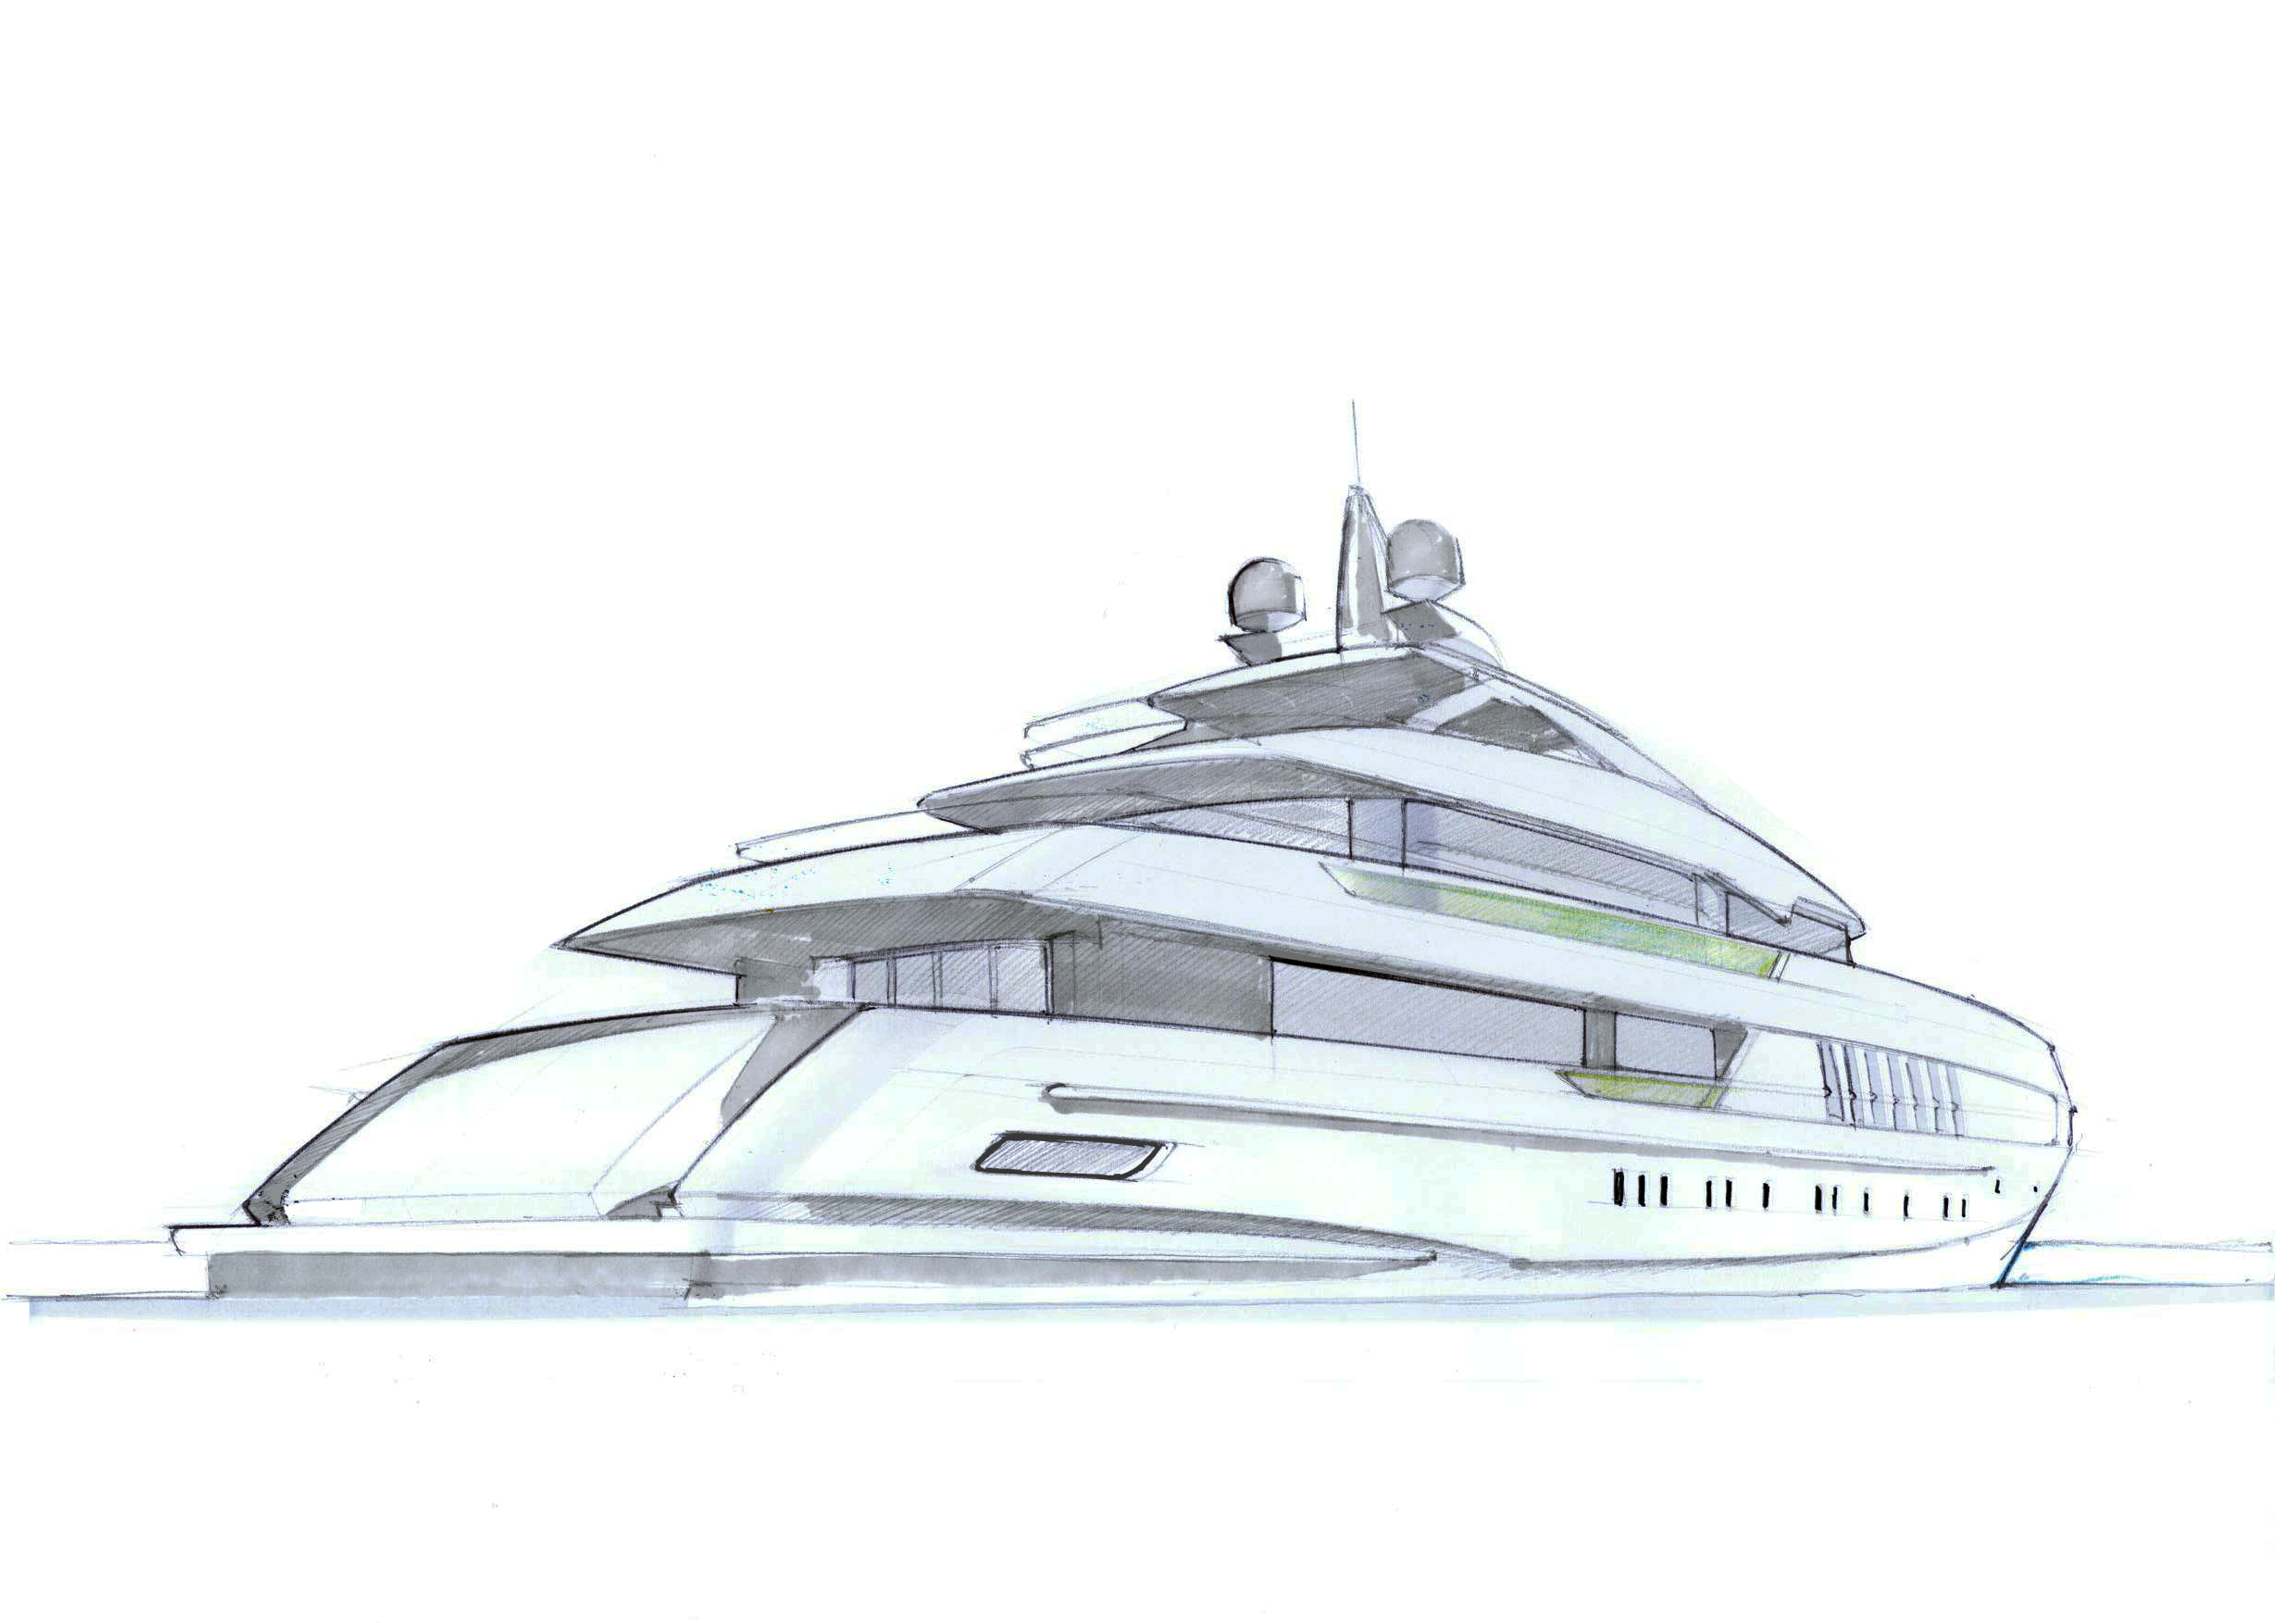 Yacht clipart future The Luxury Charter yacht